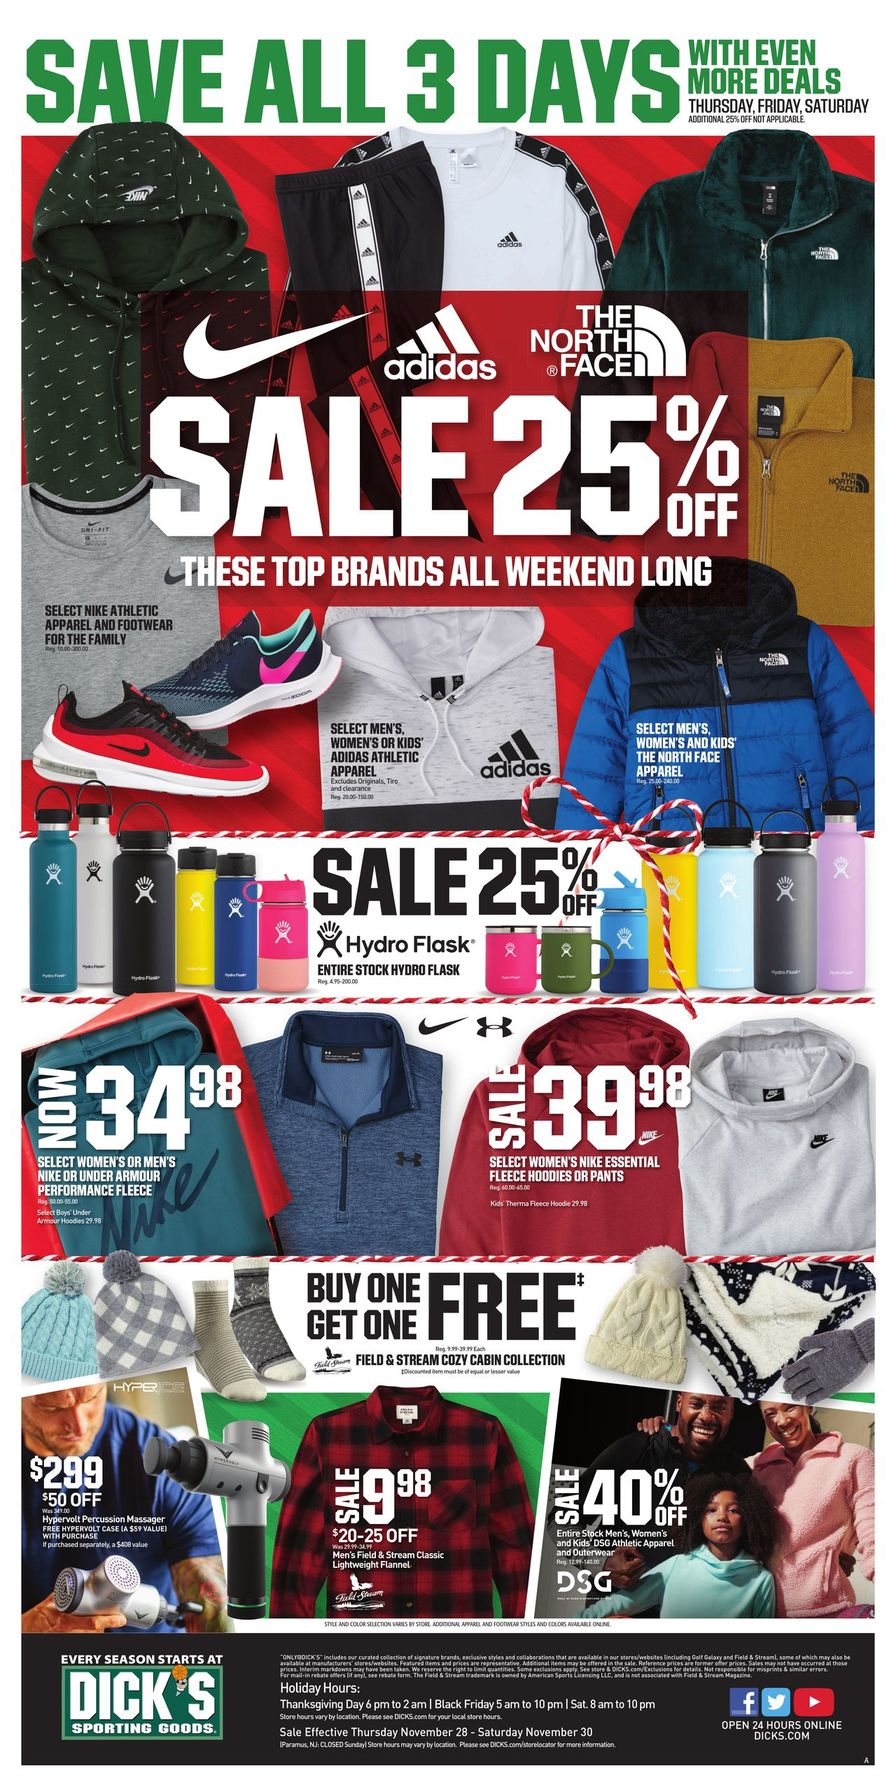 Dick's Sporting Goods Black Friday 2019 Page 4